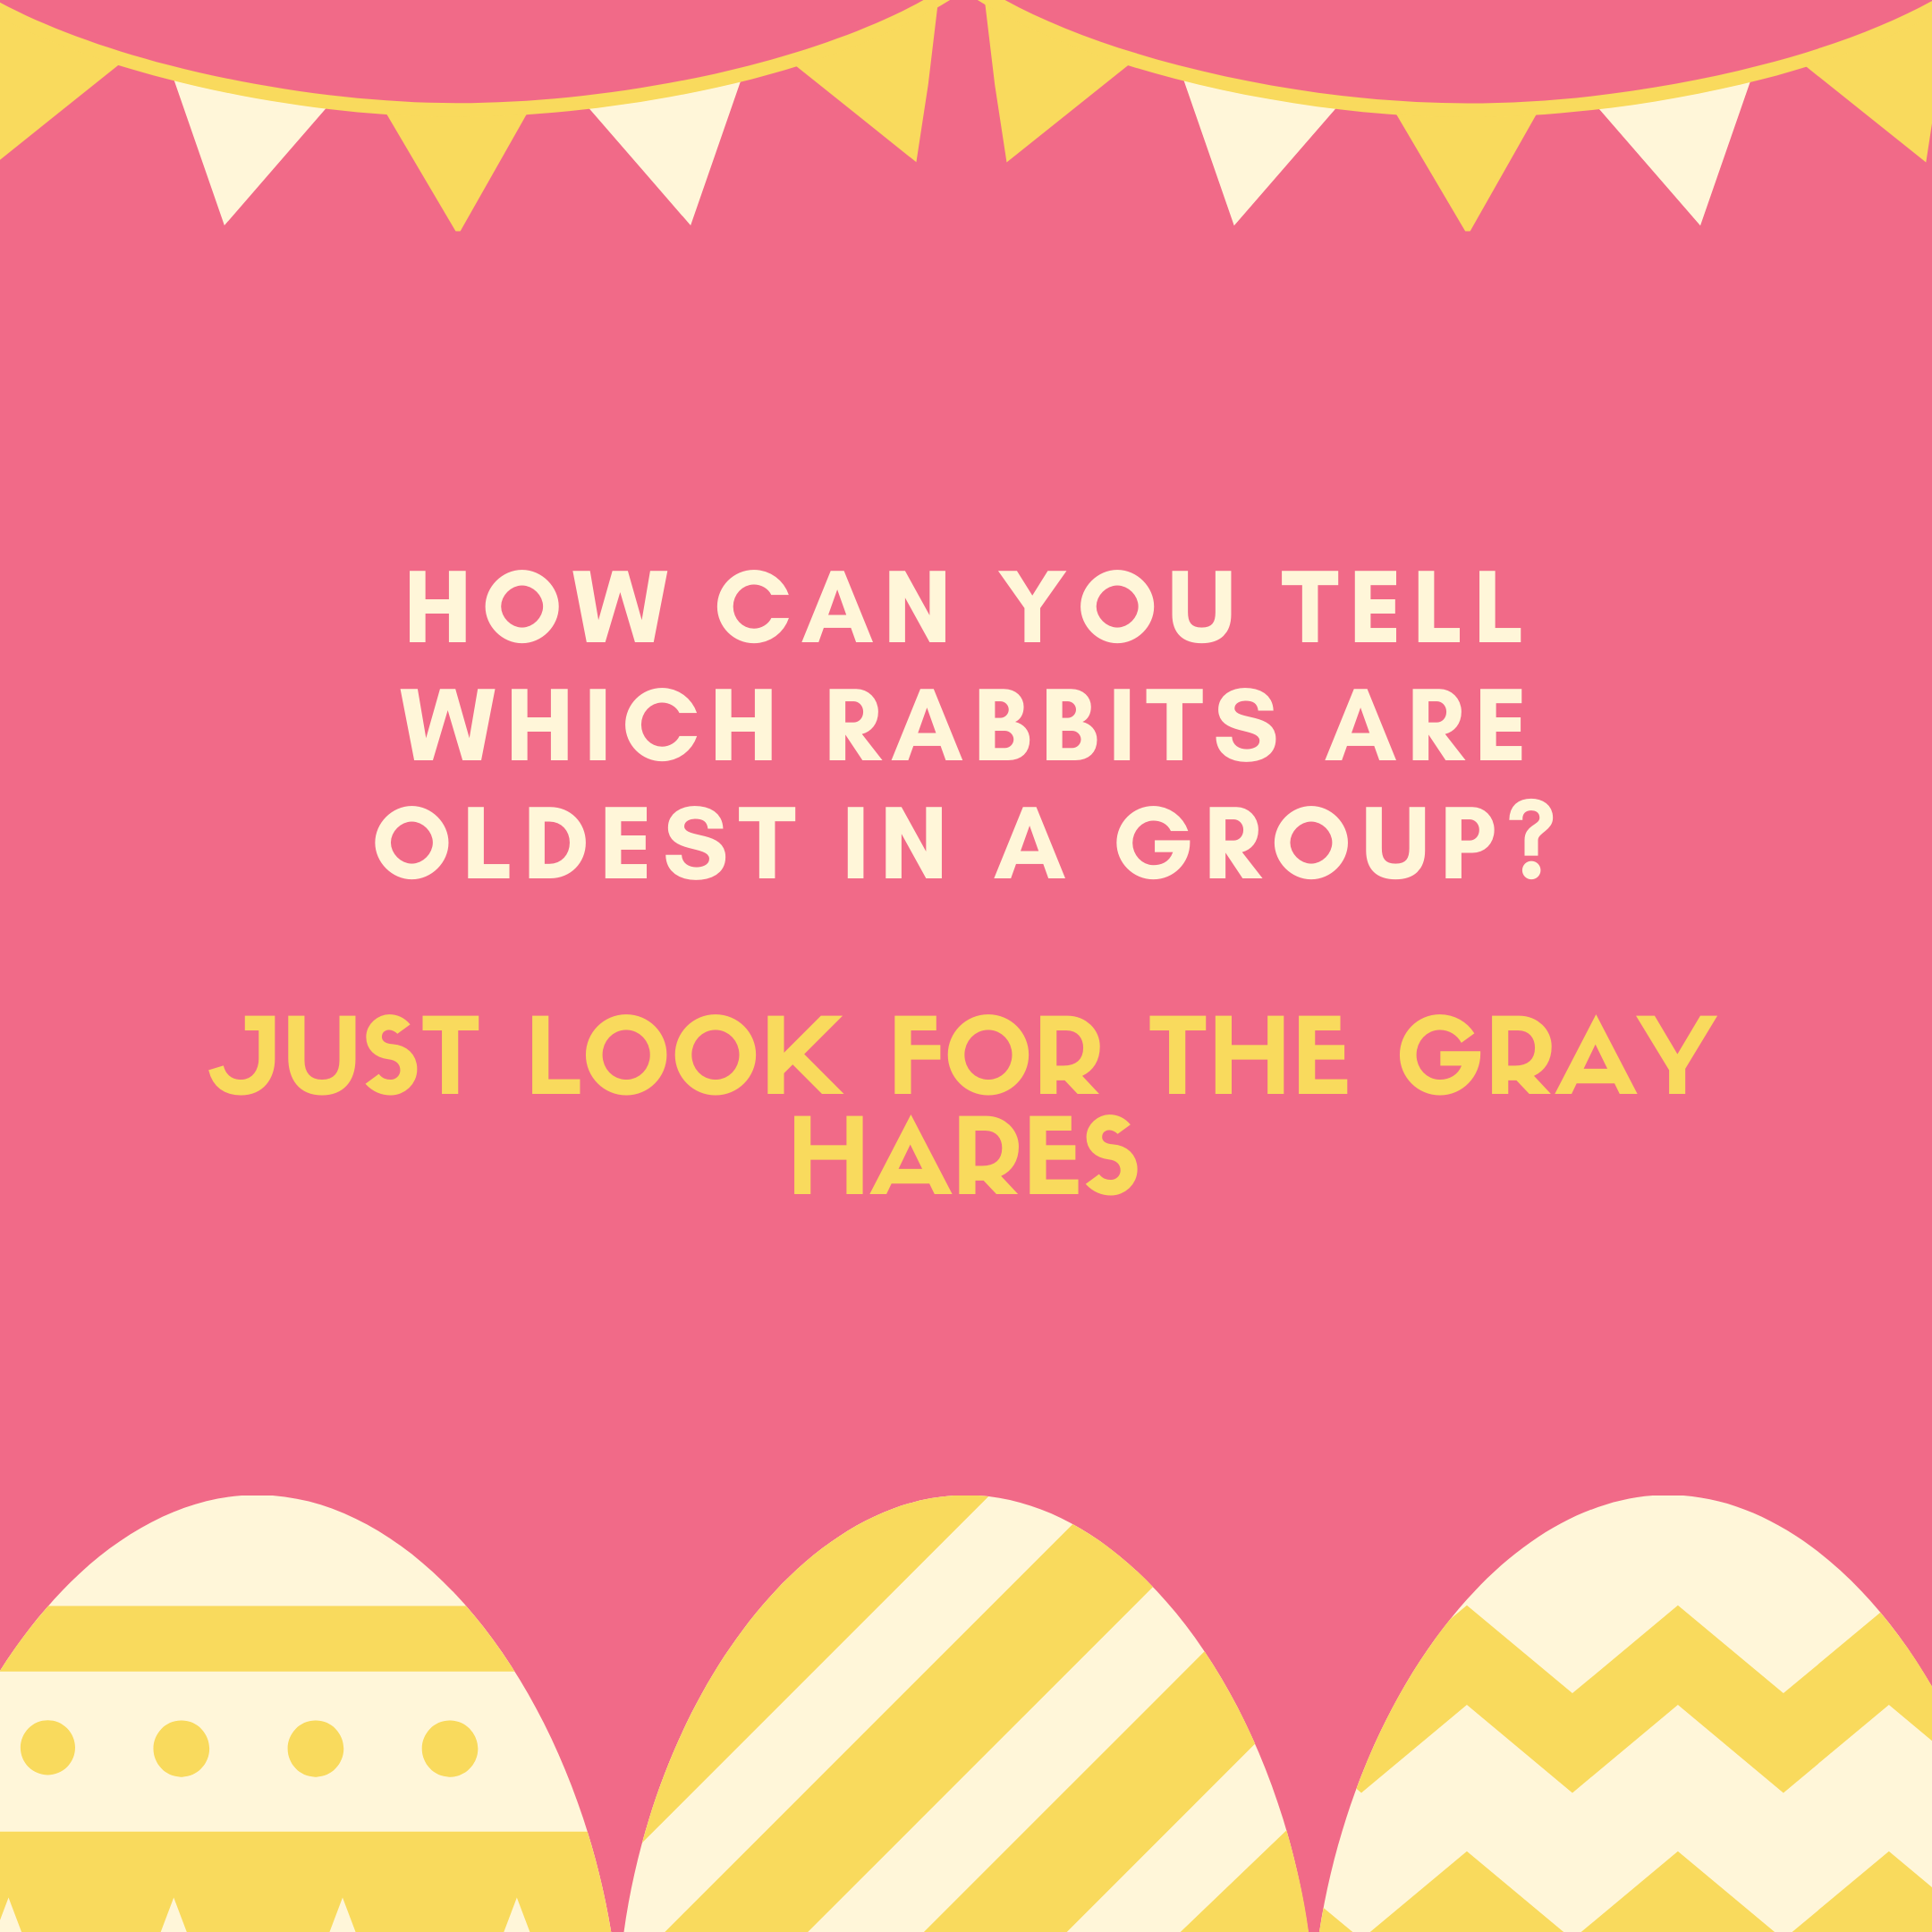 How can you tell which rabbits are oldest in a group? Just look for the gray hares